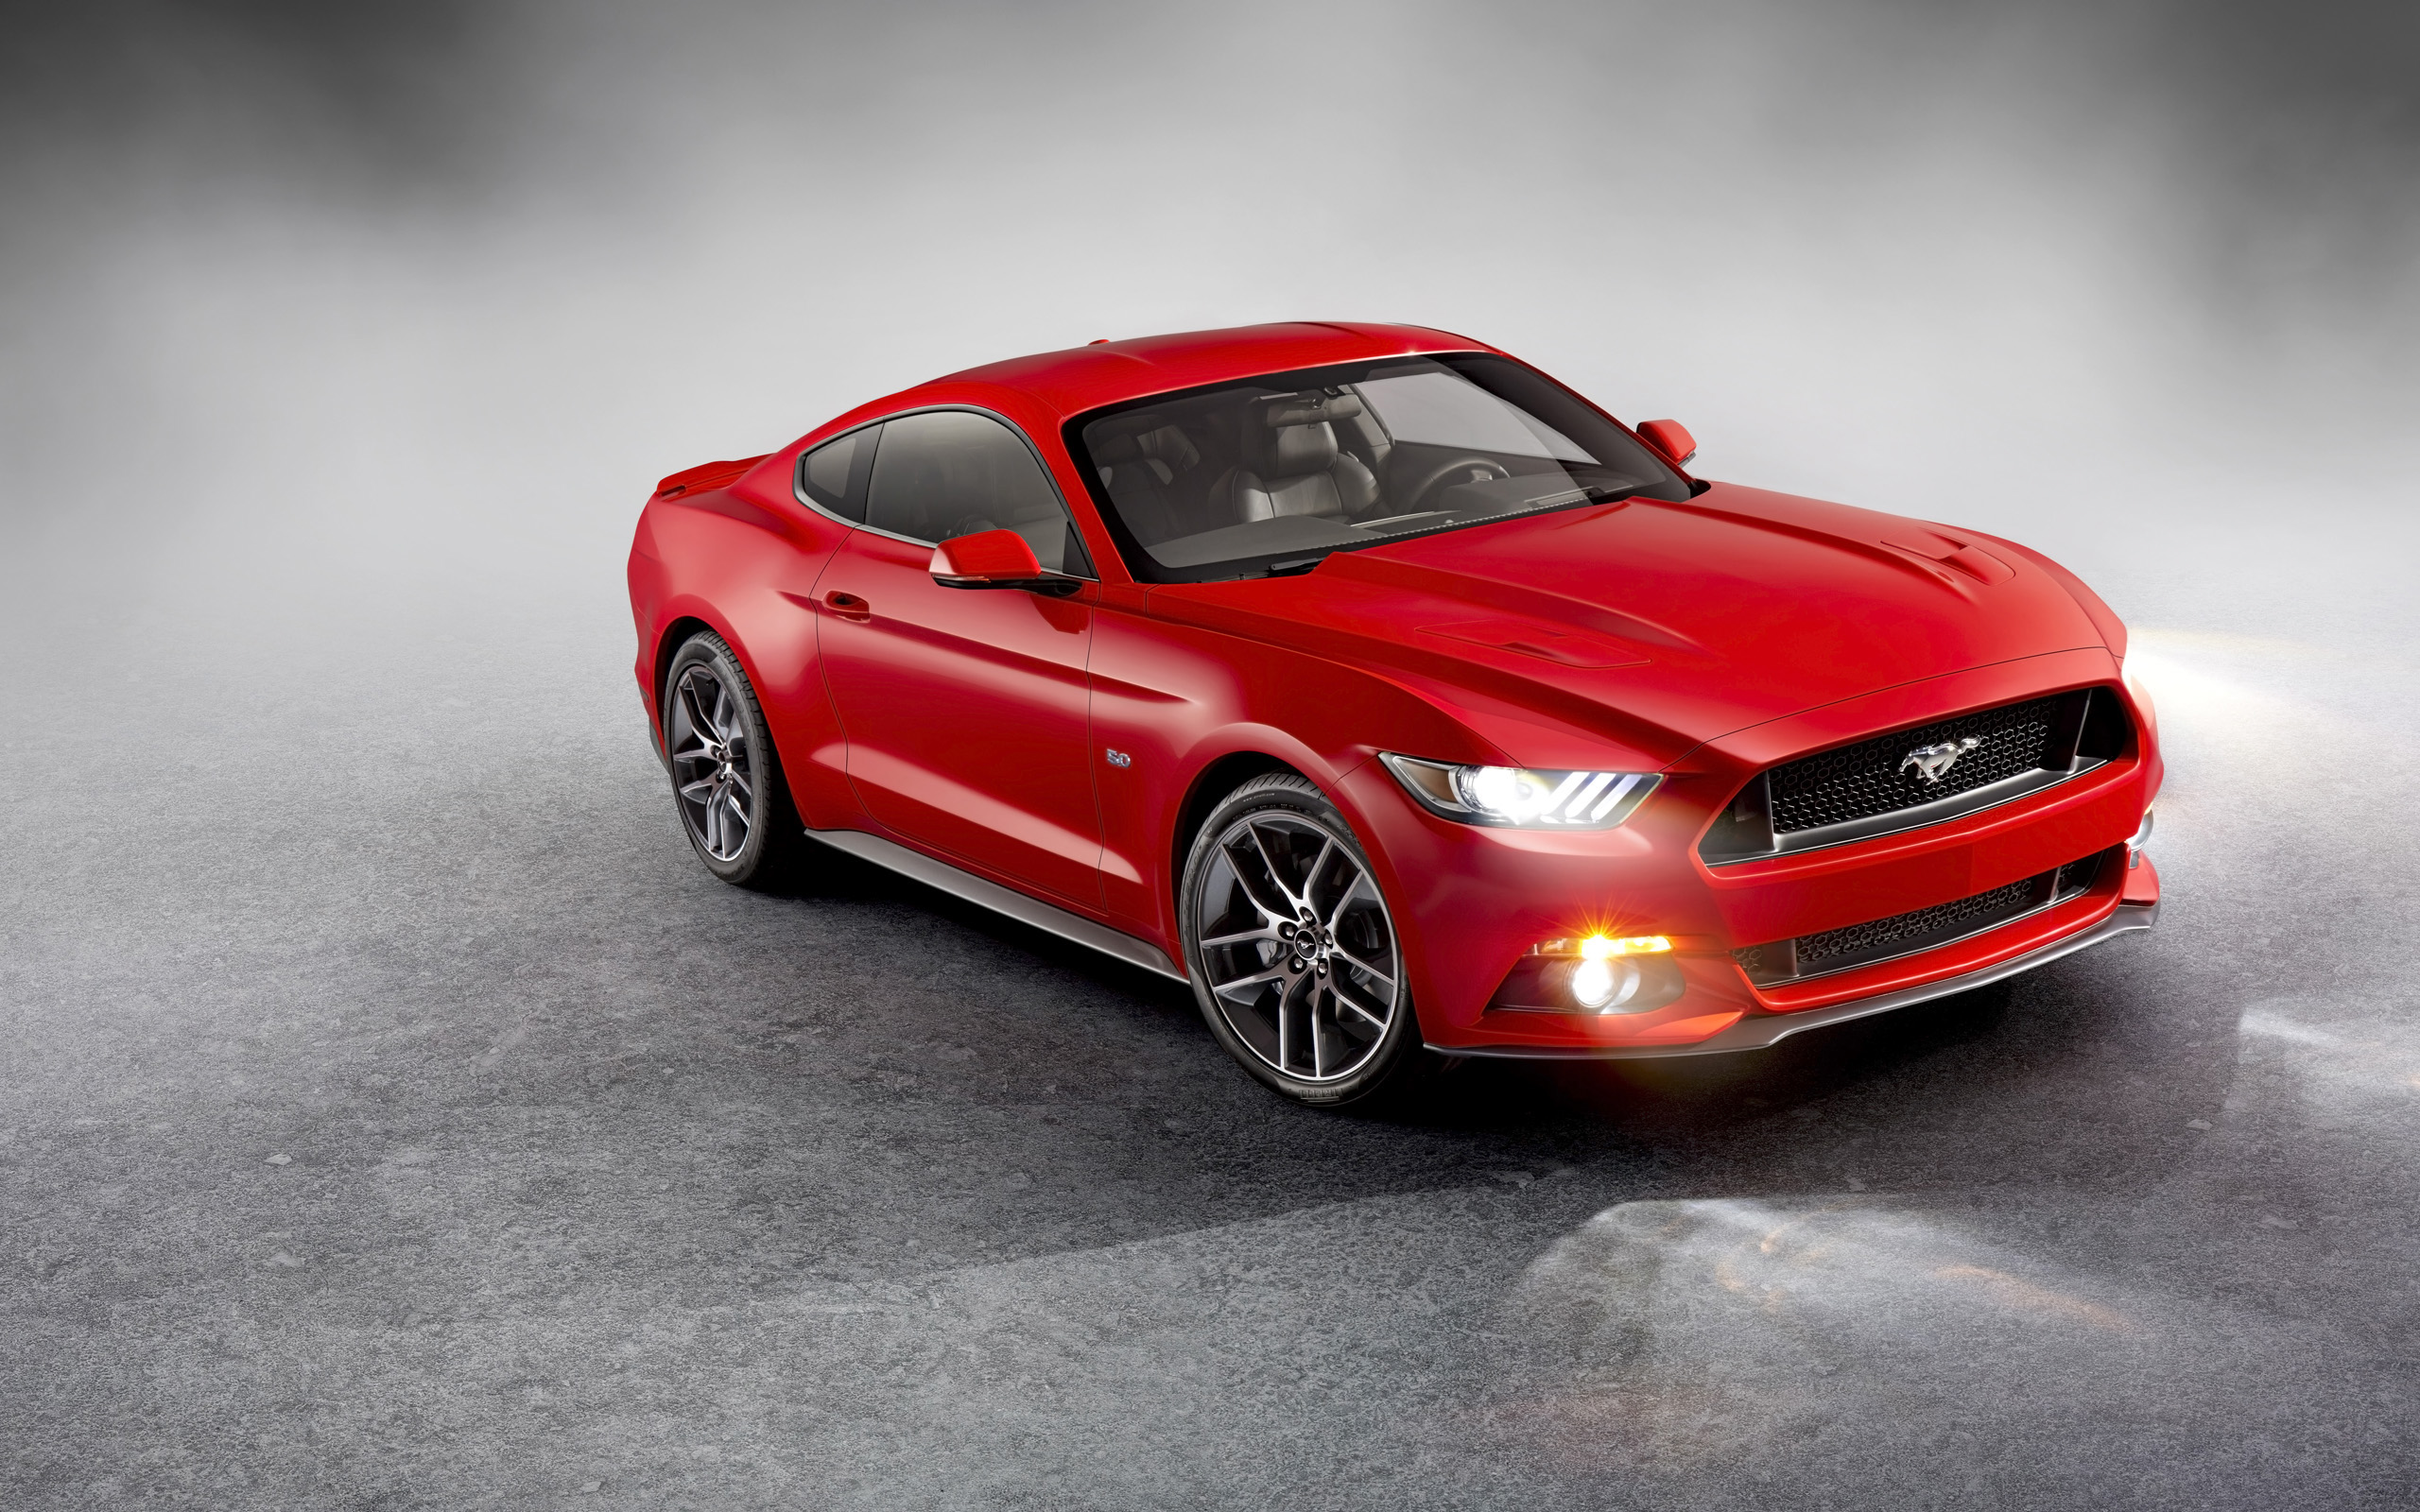 Red Mustang 2015 Wallpaper HD